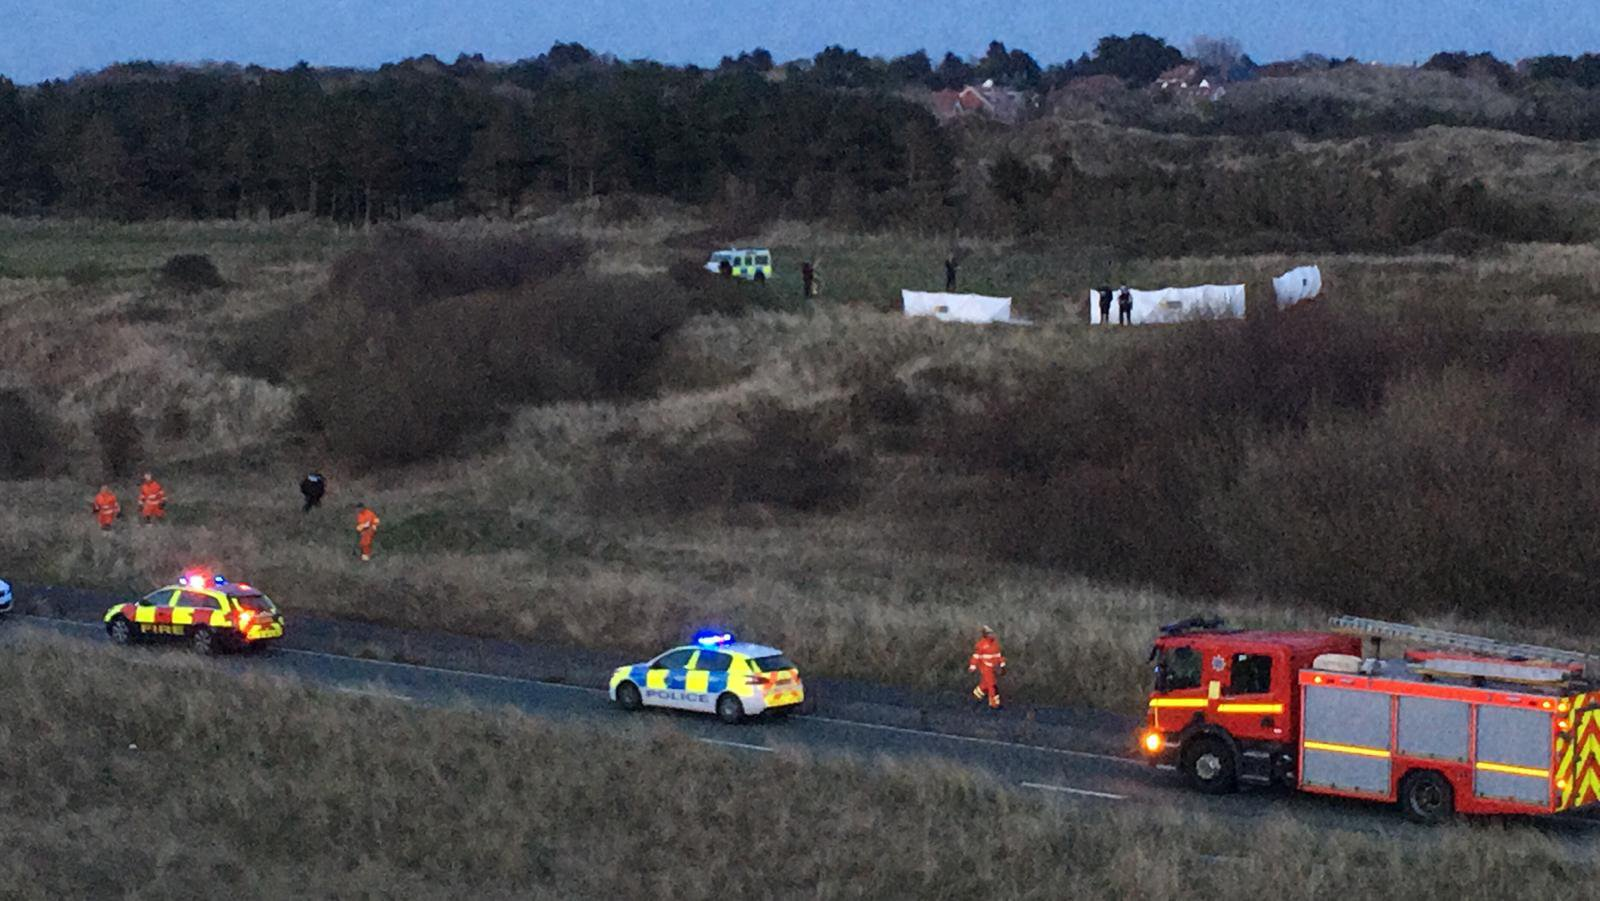 A plane has crashed onto a golf course and burst into flames in Merseyside this evening [April 11]. The aircraft, described by police as a microlight, plummeted onto Royal Birkdale Golf Club in Southport at around 7pm. Caption: Emergency services at the scene of an aircraft crash at Royal Birkdale Golf Club in Southport, Merseyside, on April 11, 2019